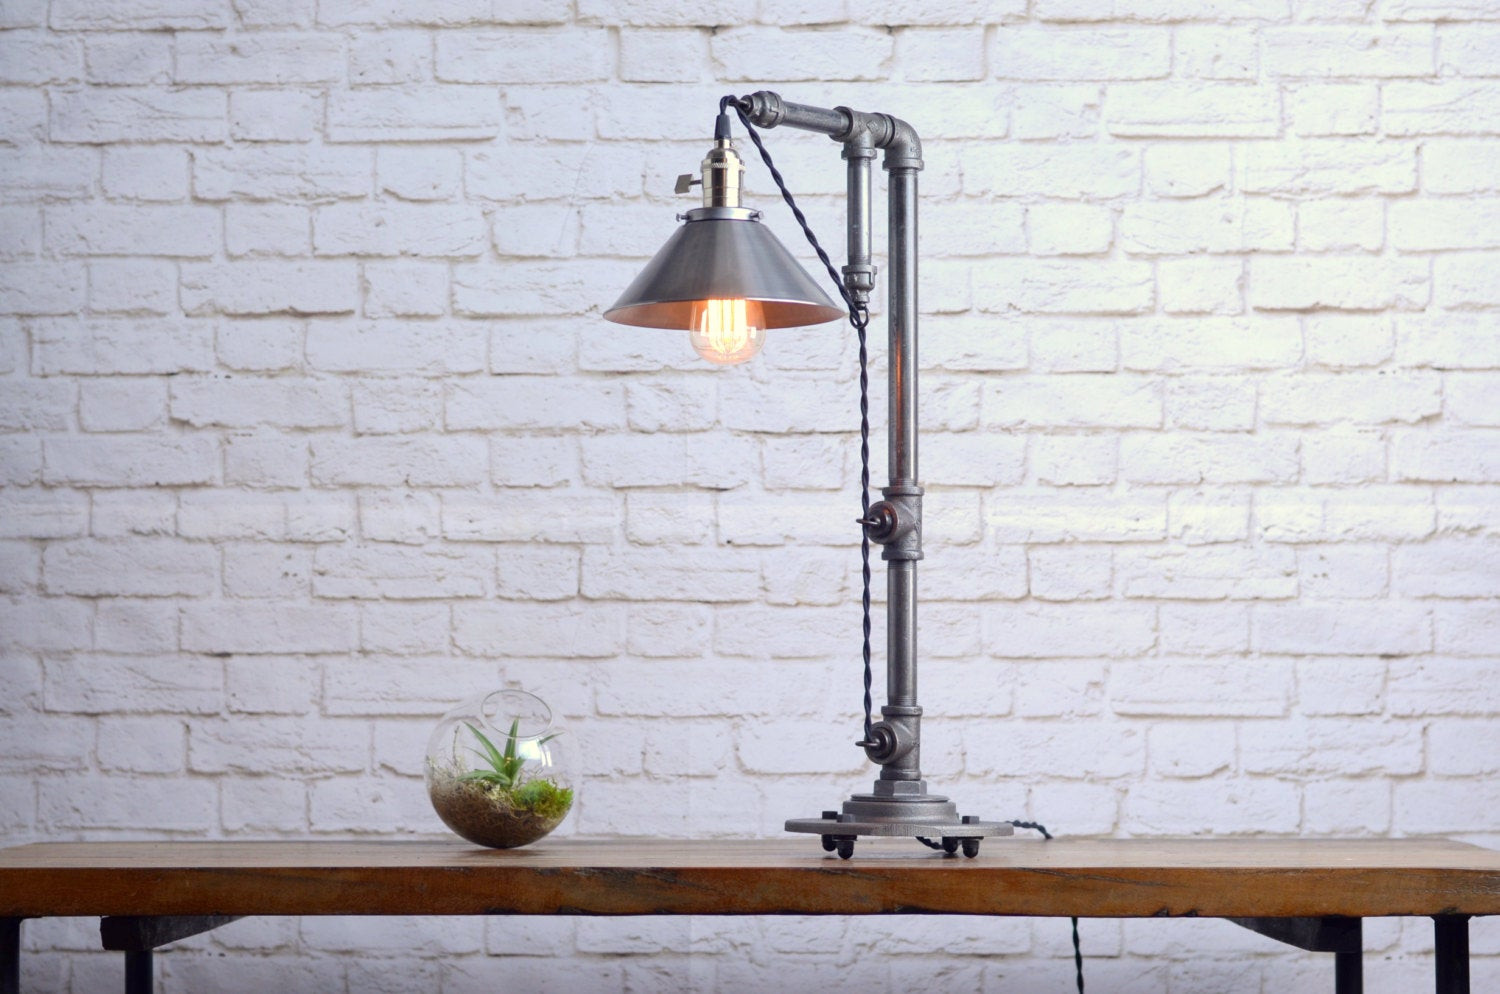 Best ideas about Industrial Desk Lamp . Save or Pin Industrial Table Lamp Table Lamps Industrial Style Lamp Now.